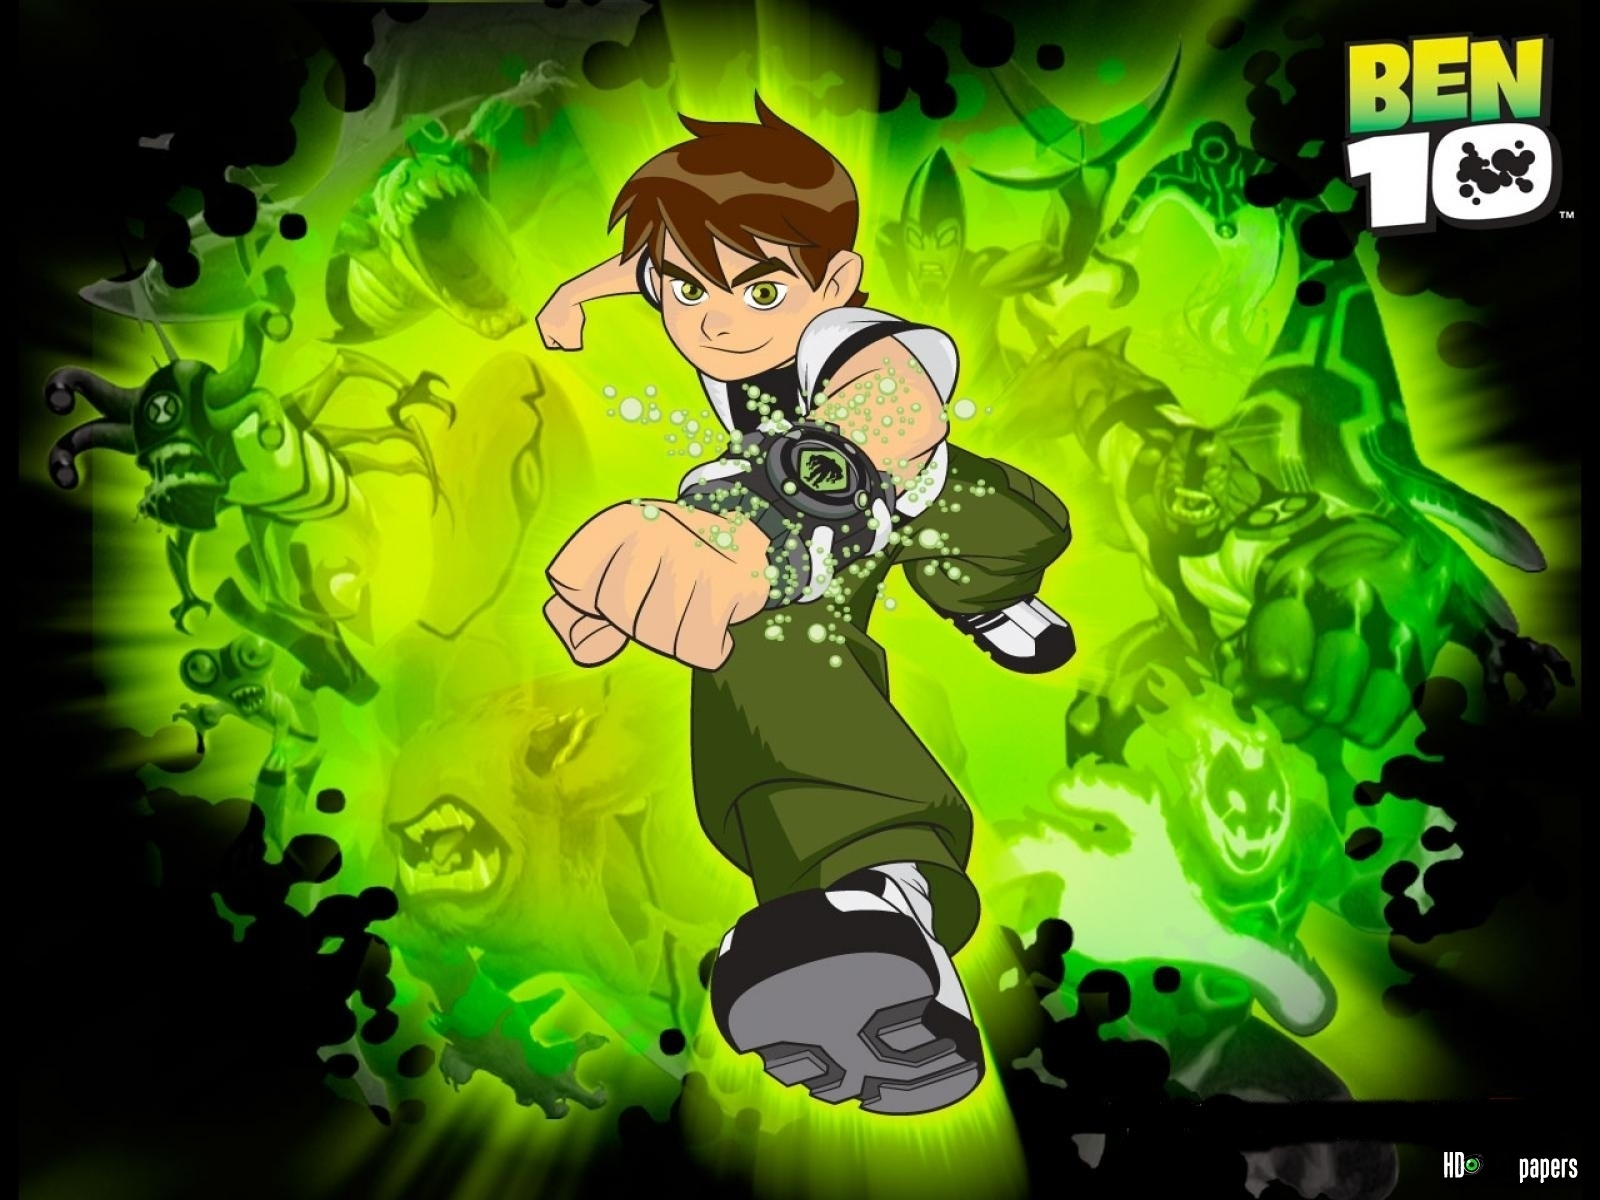 ben 10 cartoon wallpapers free download